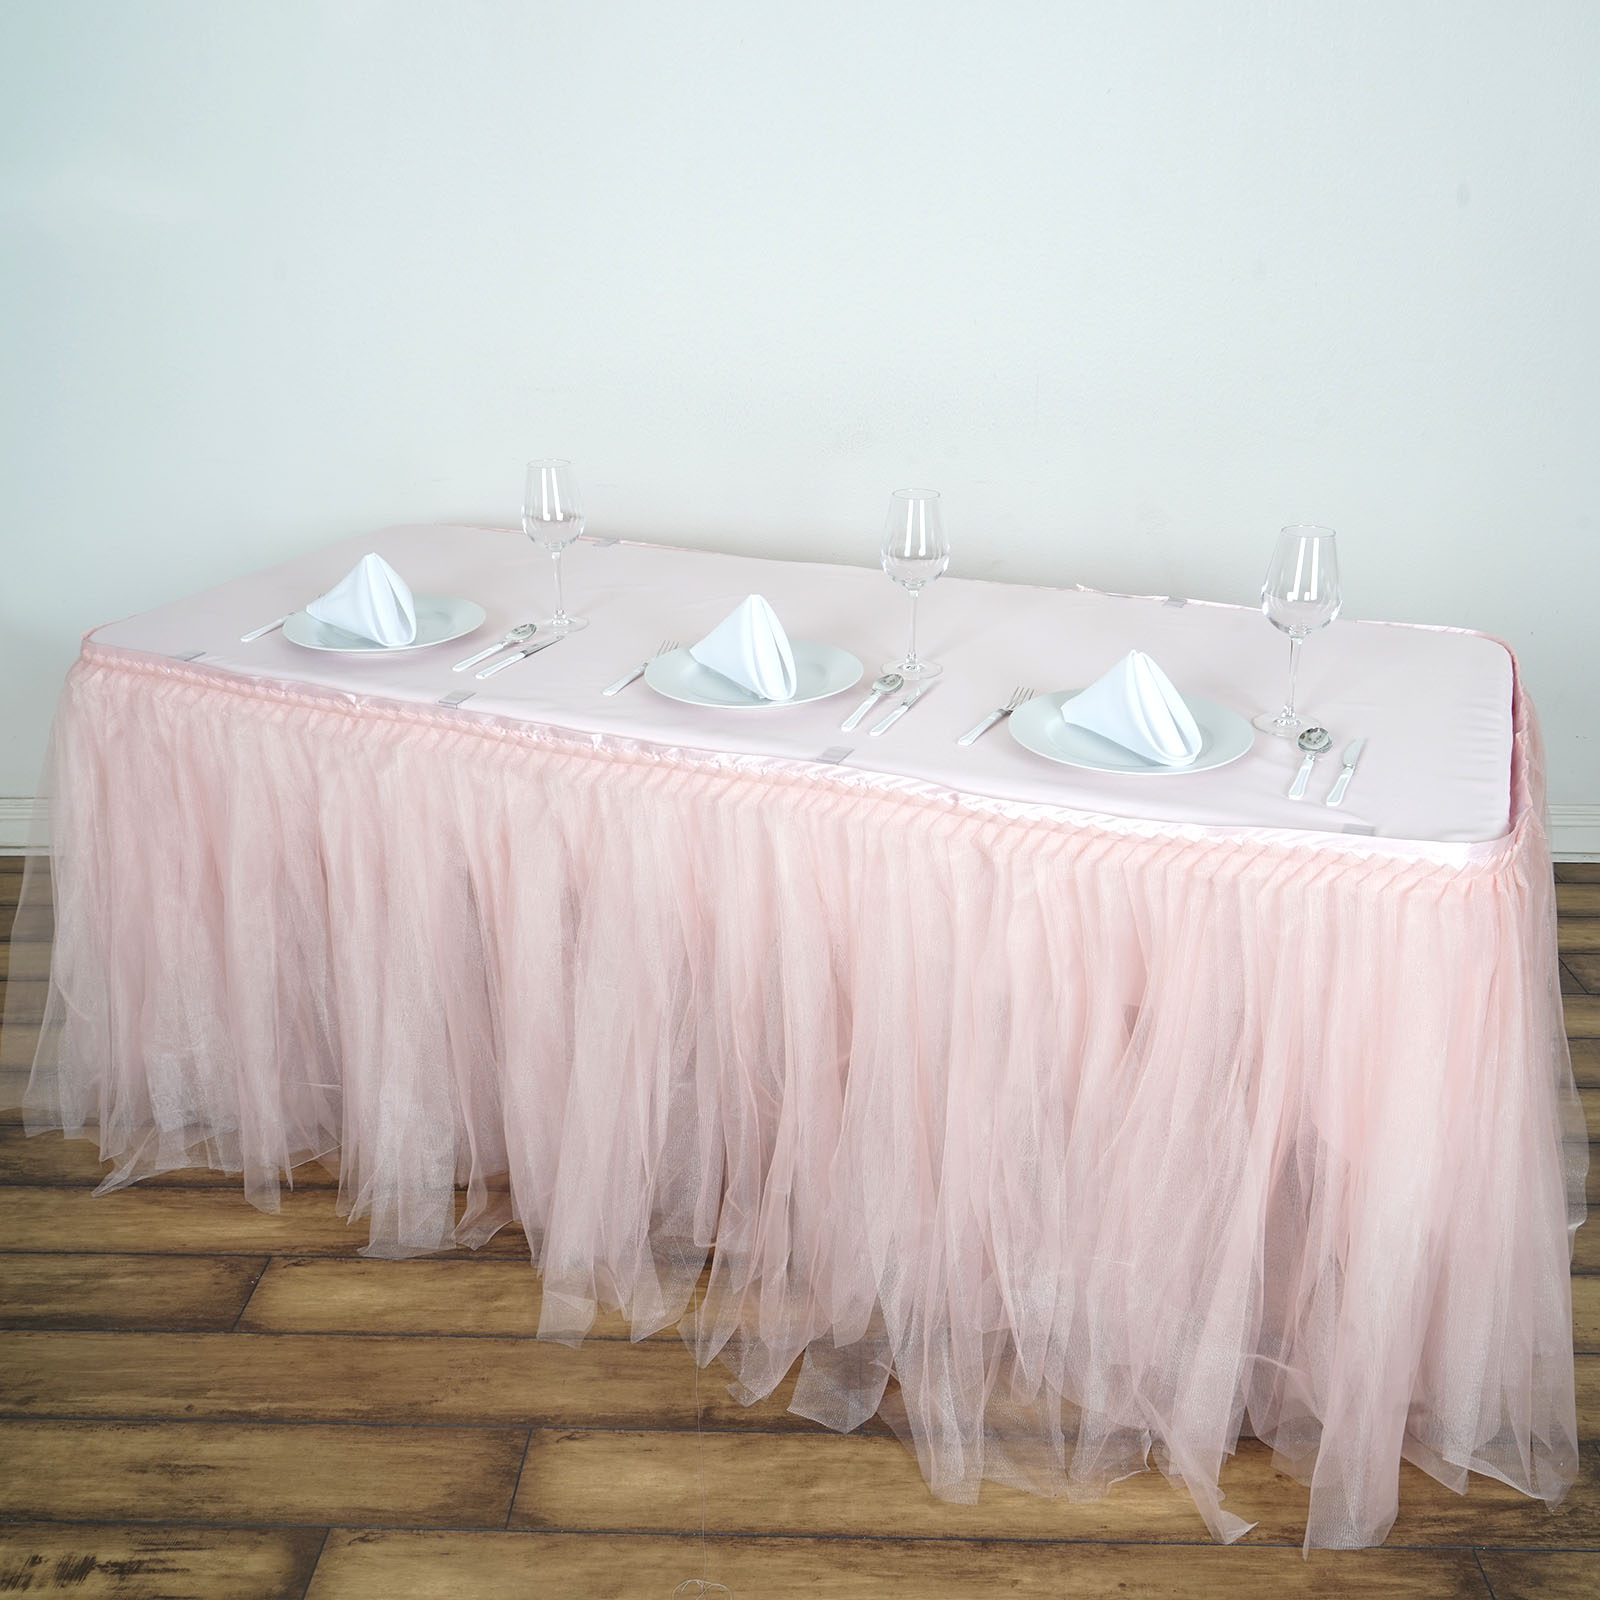 BalsaCircle Tutu Two Layers Tulle Table Skirt Linens - 3 sizes - Wedding Party Trade Show Booth Events Birthday Linens Decorations